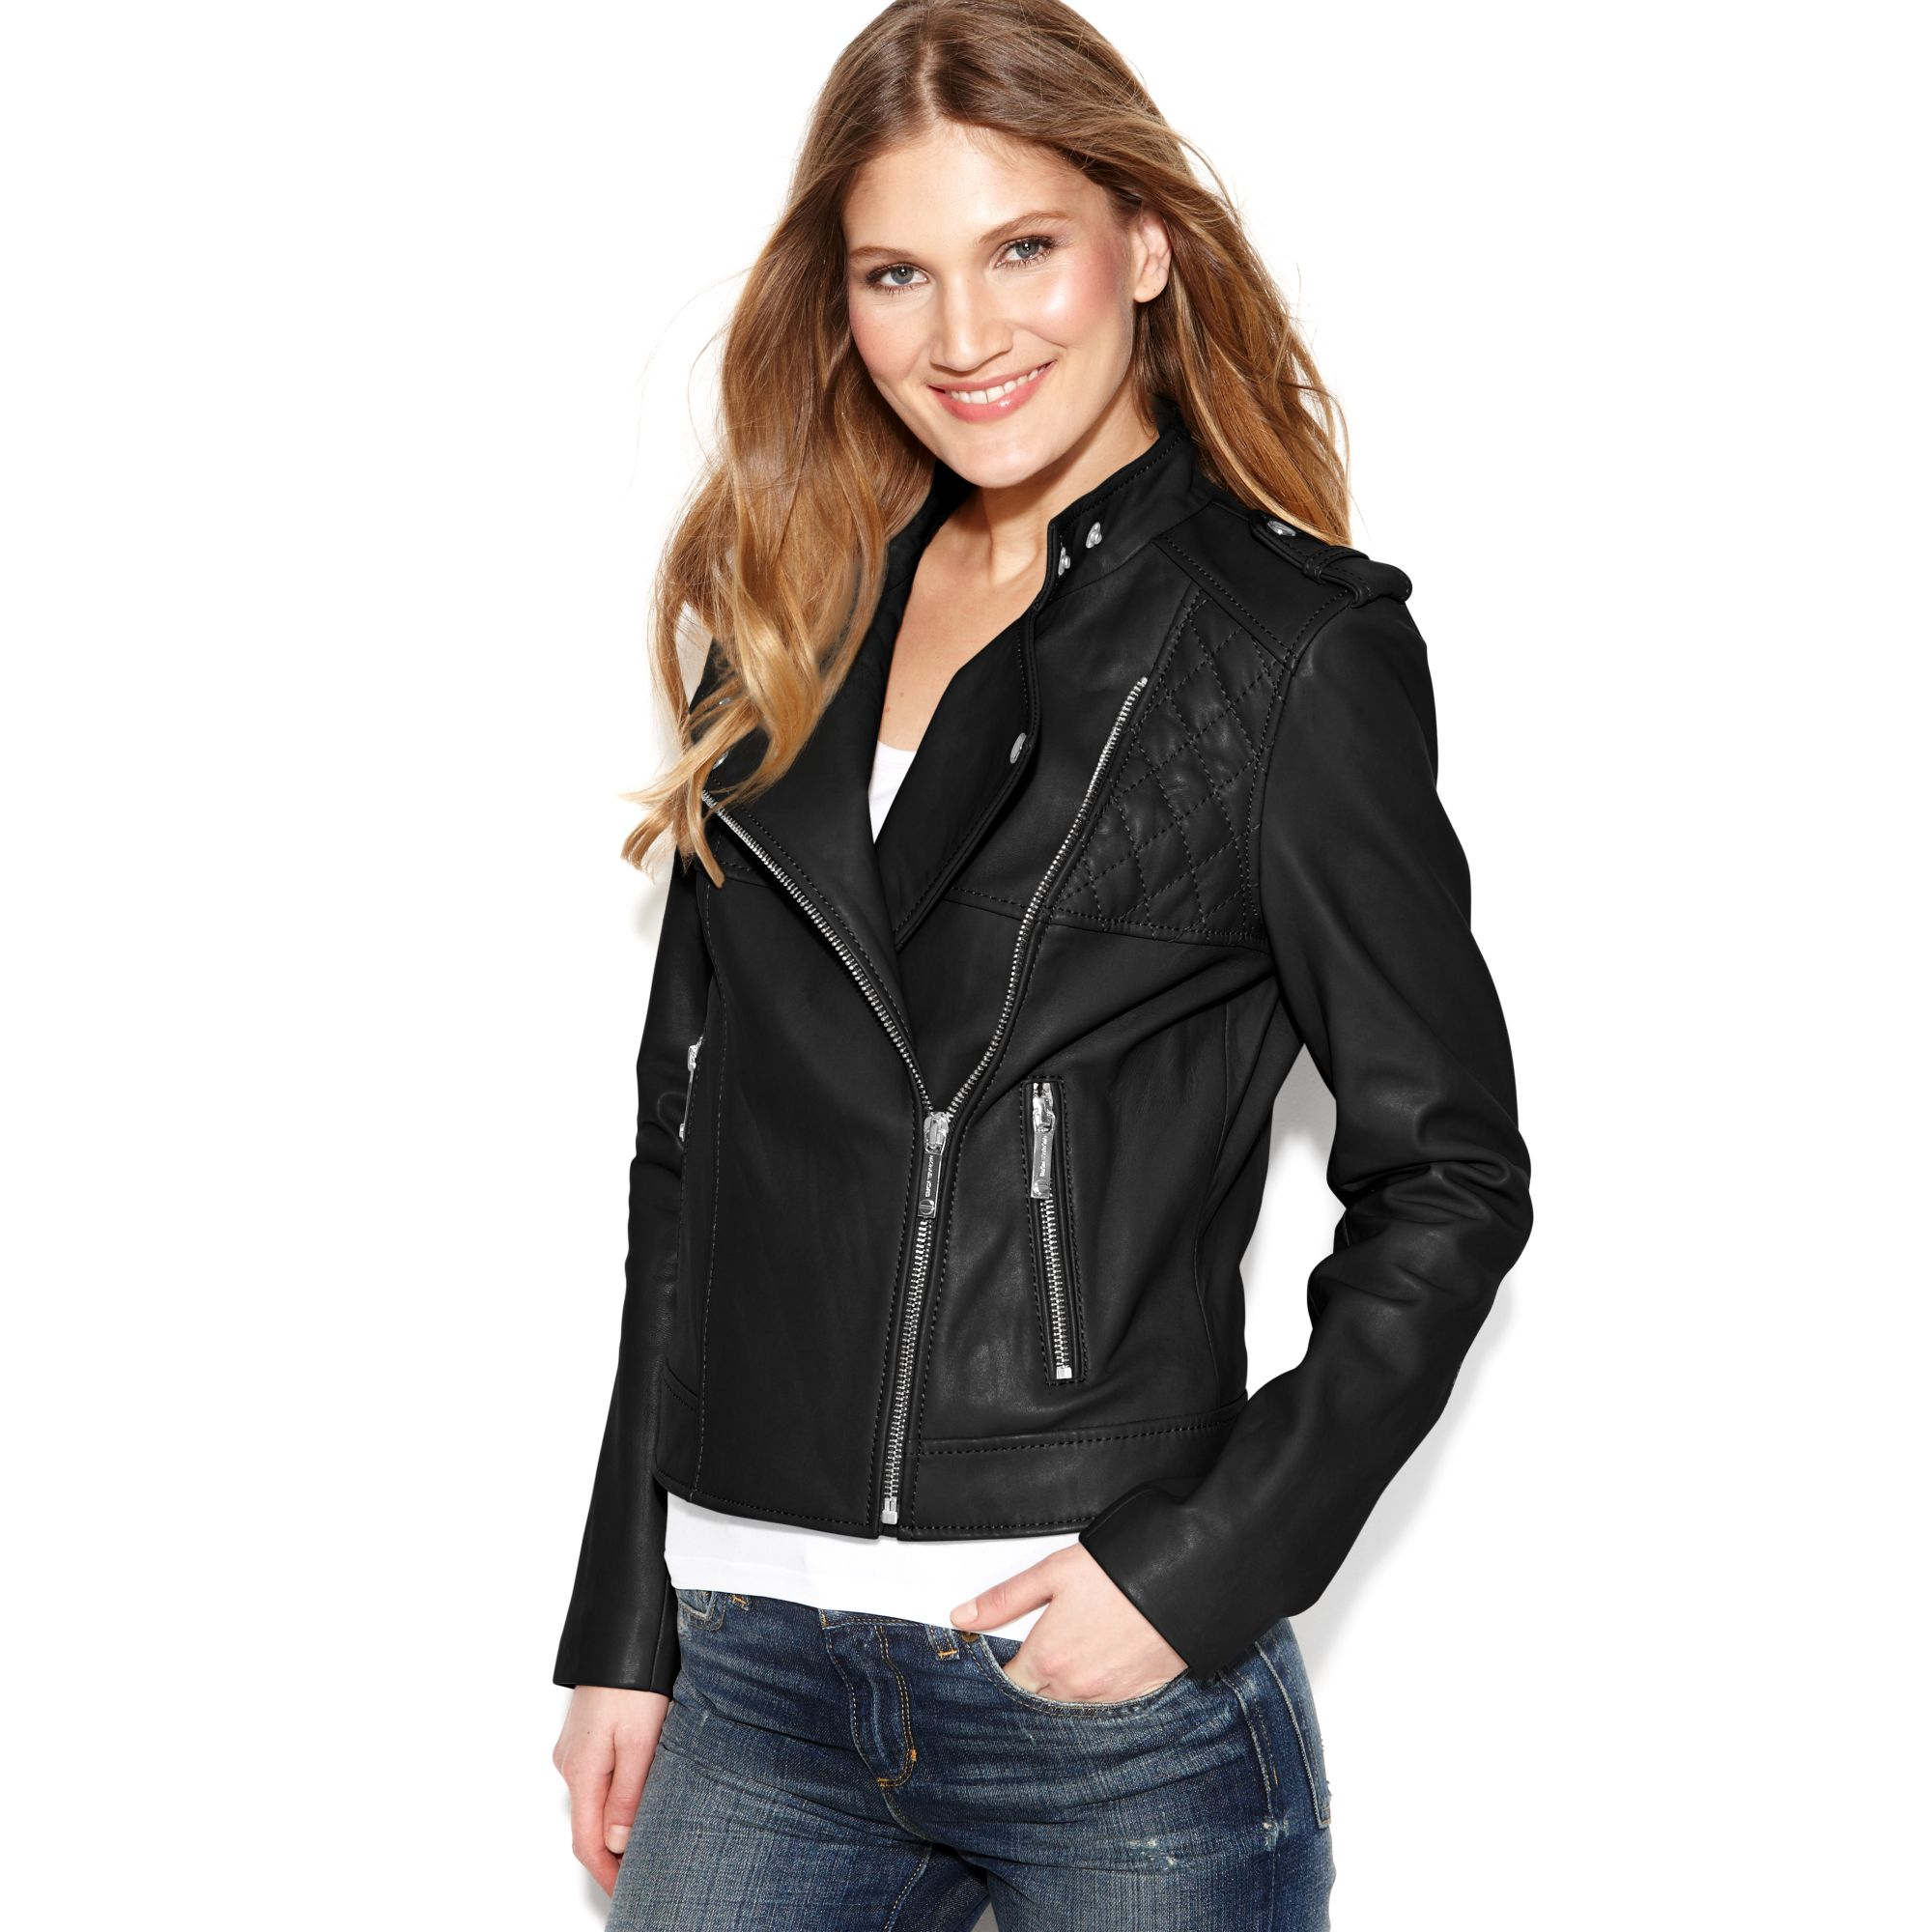 michael kors quilted leather motorcycle jacket in black lyst. Black Bedroom Furniture Sets. Home Design Ideas